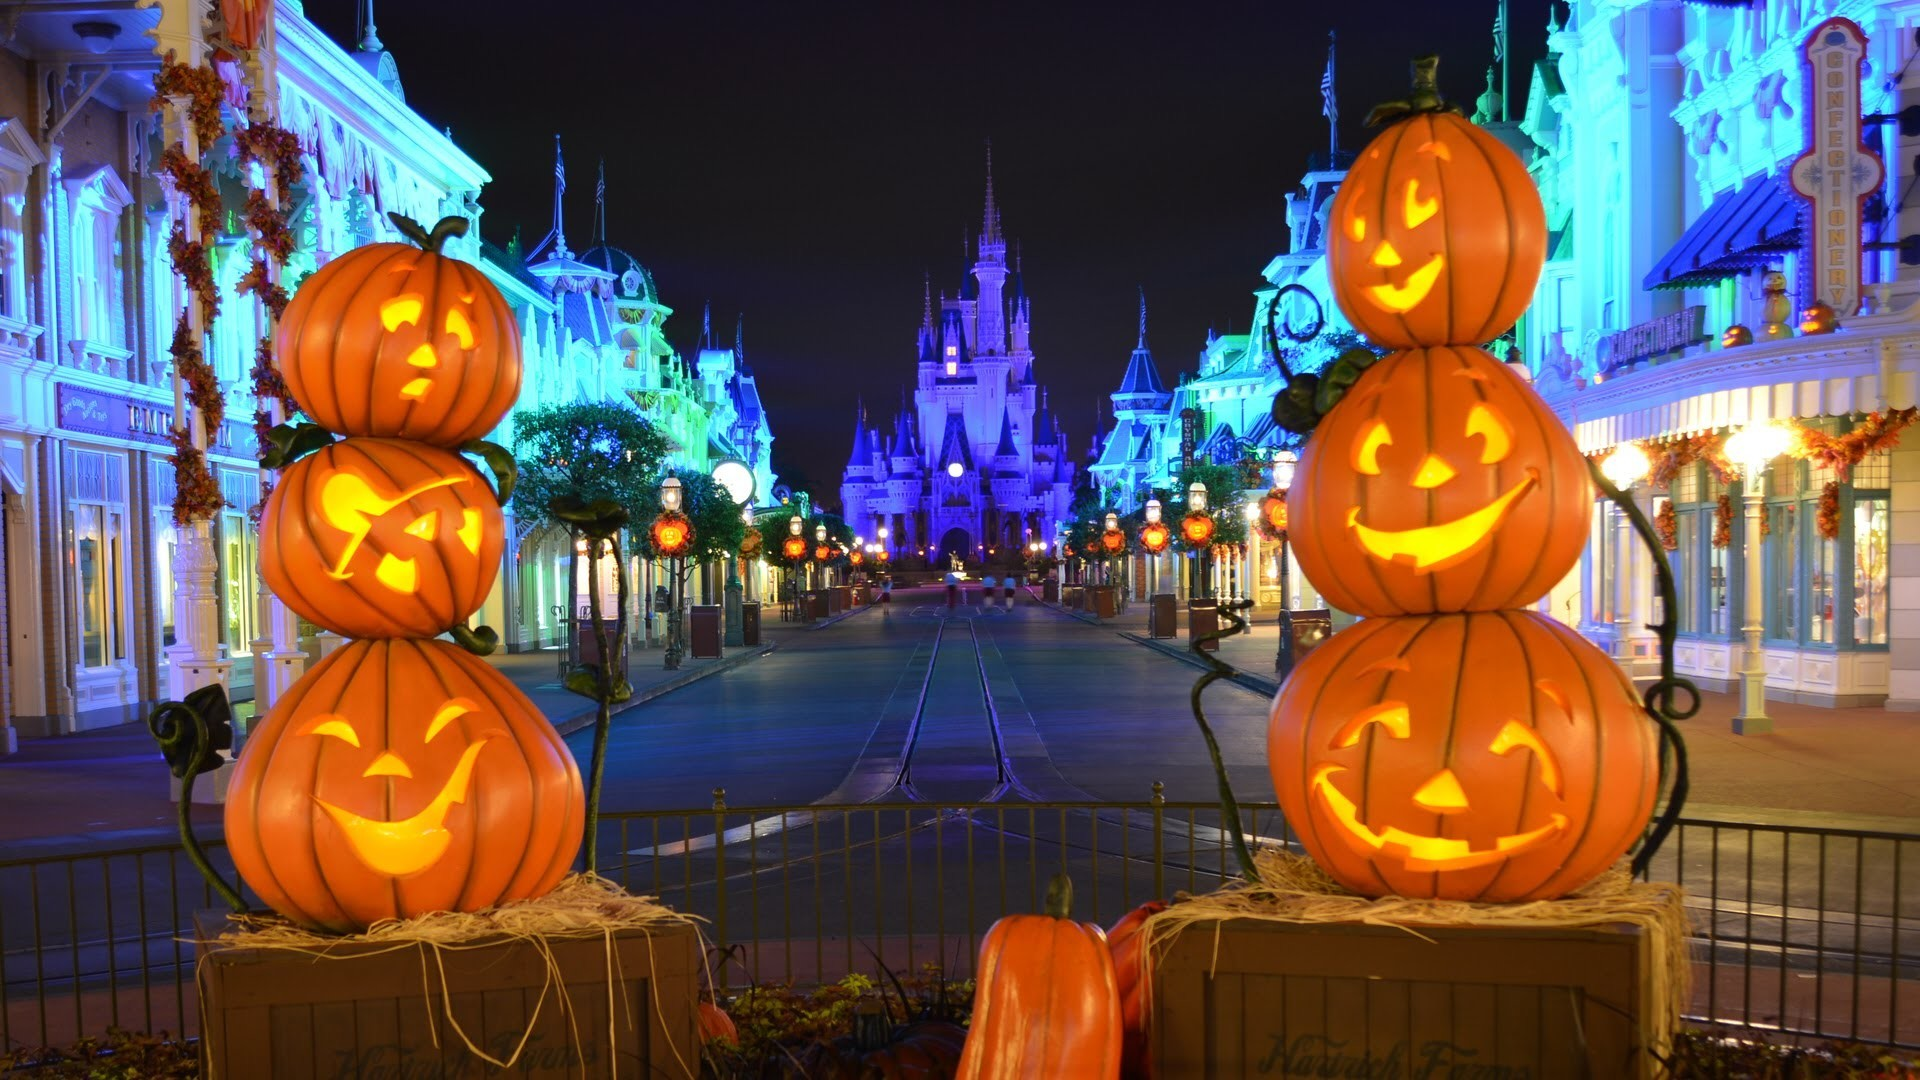 1131144 most popular disney halloween backgrounds 1920x1080 ipad